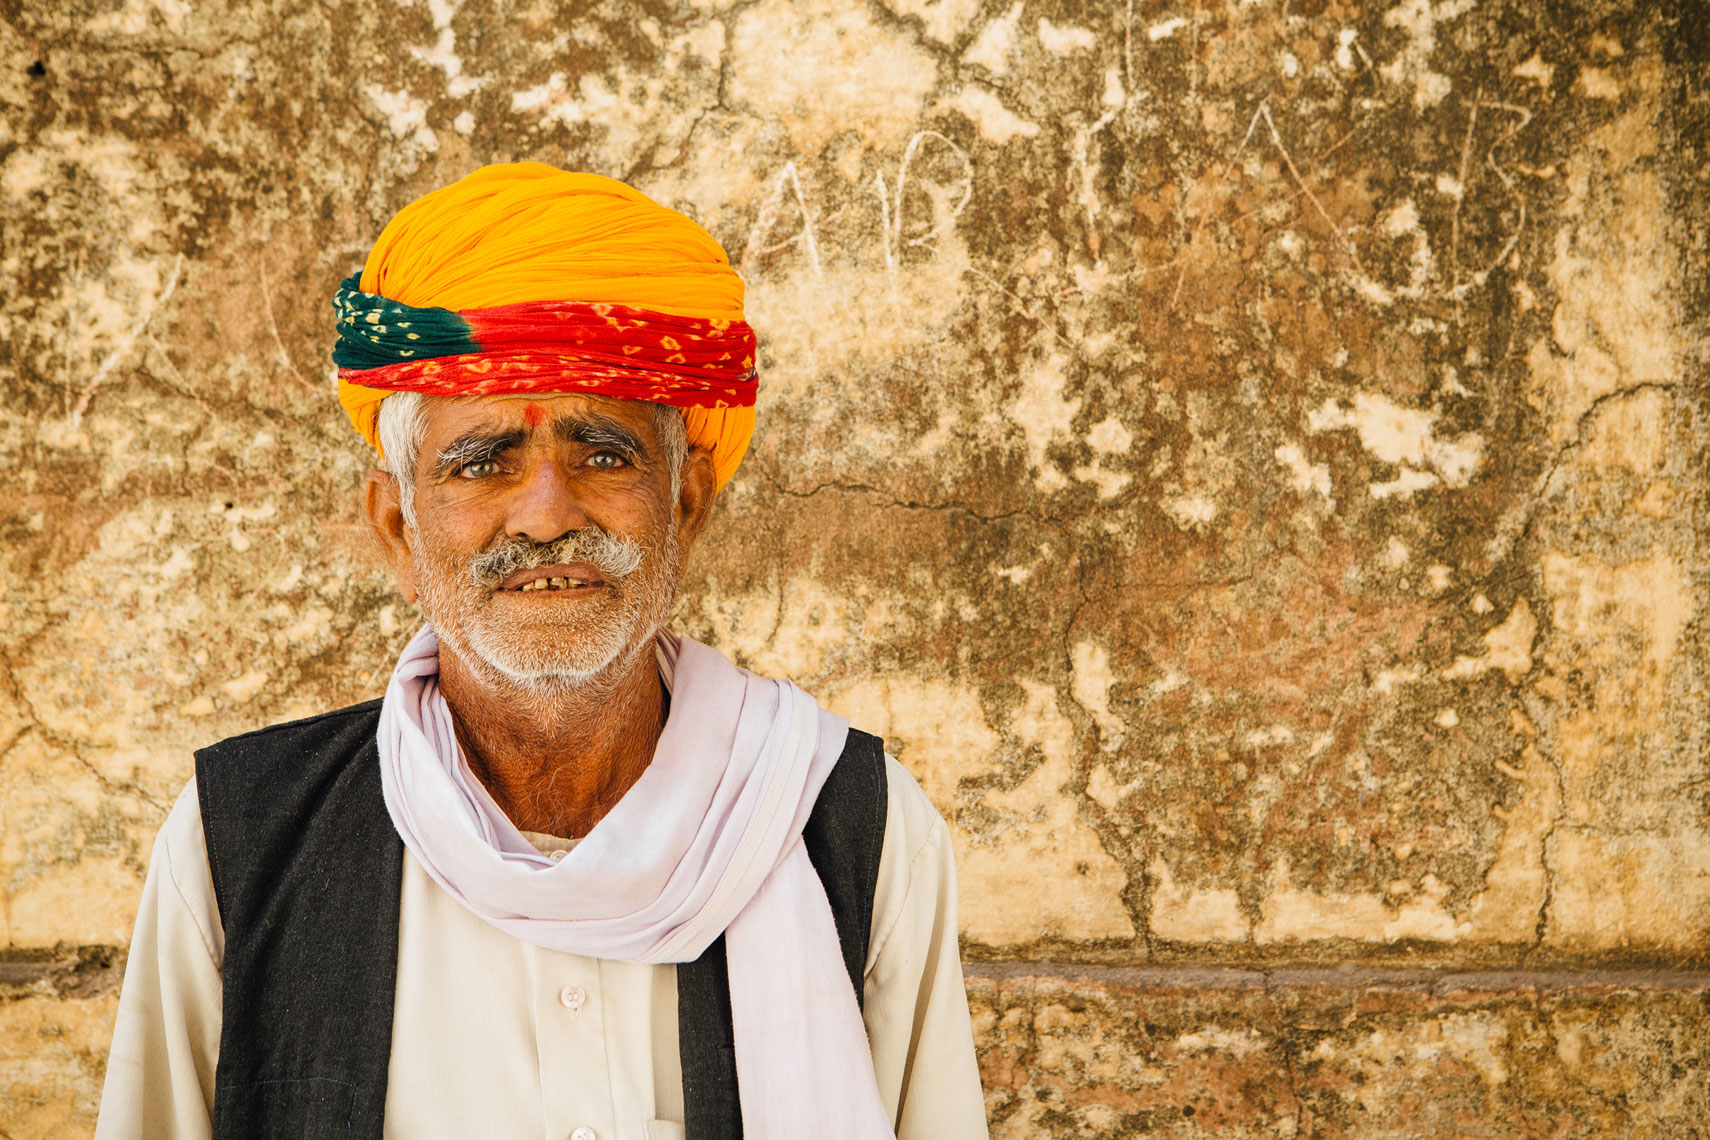 deepi-ahluwalia-india-jaipur-elderly-man